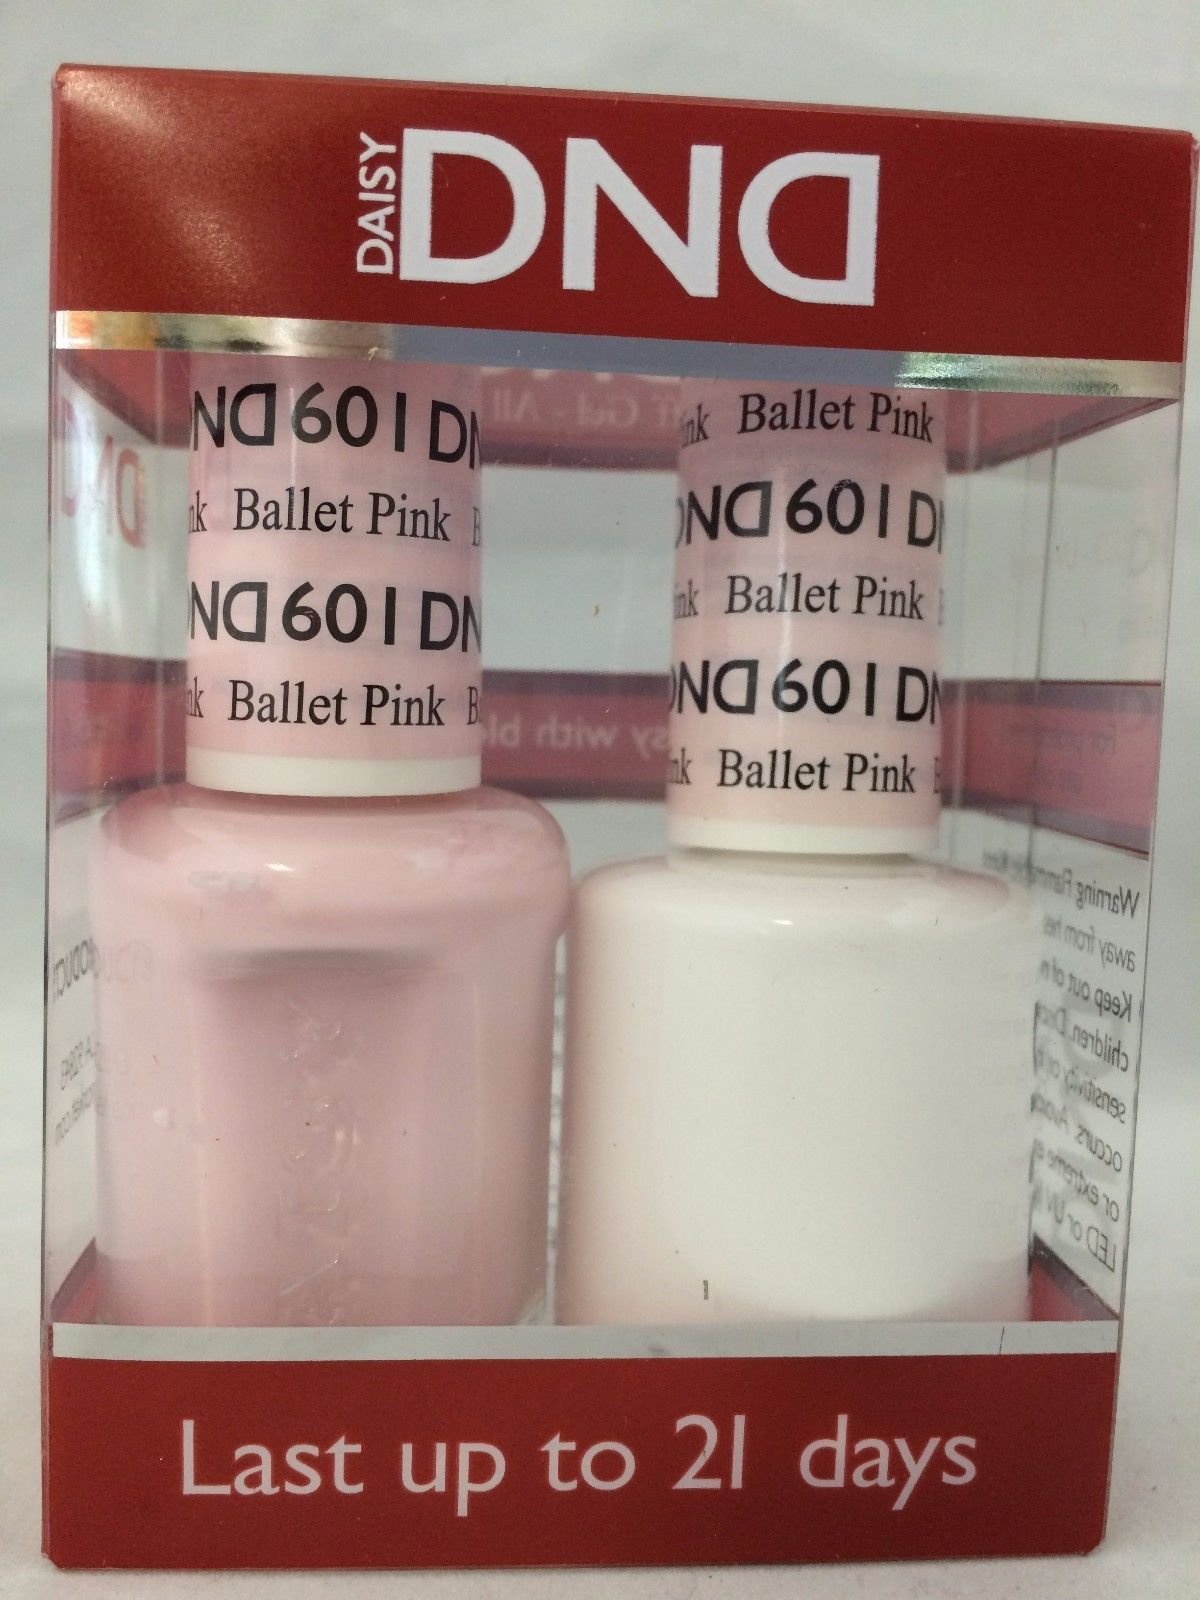 Amazon.com : DND DAISY GEL UV NAIL POLISH - DUO SET(Gel + Lacquer ...